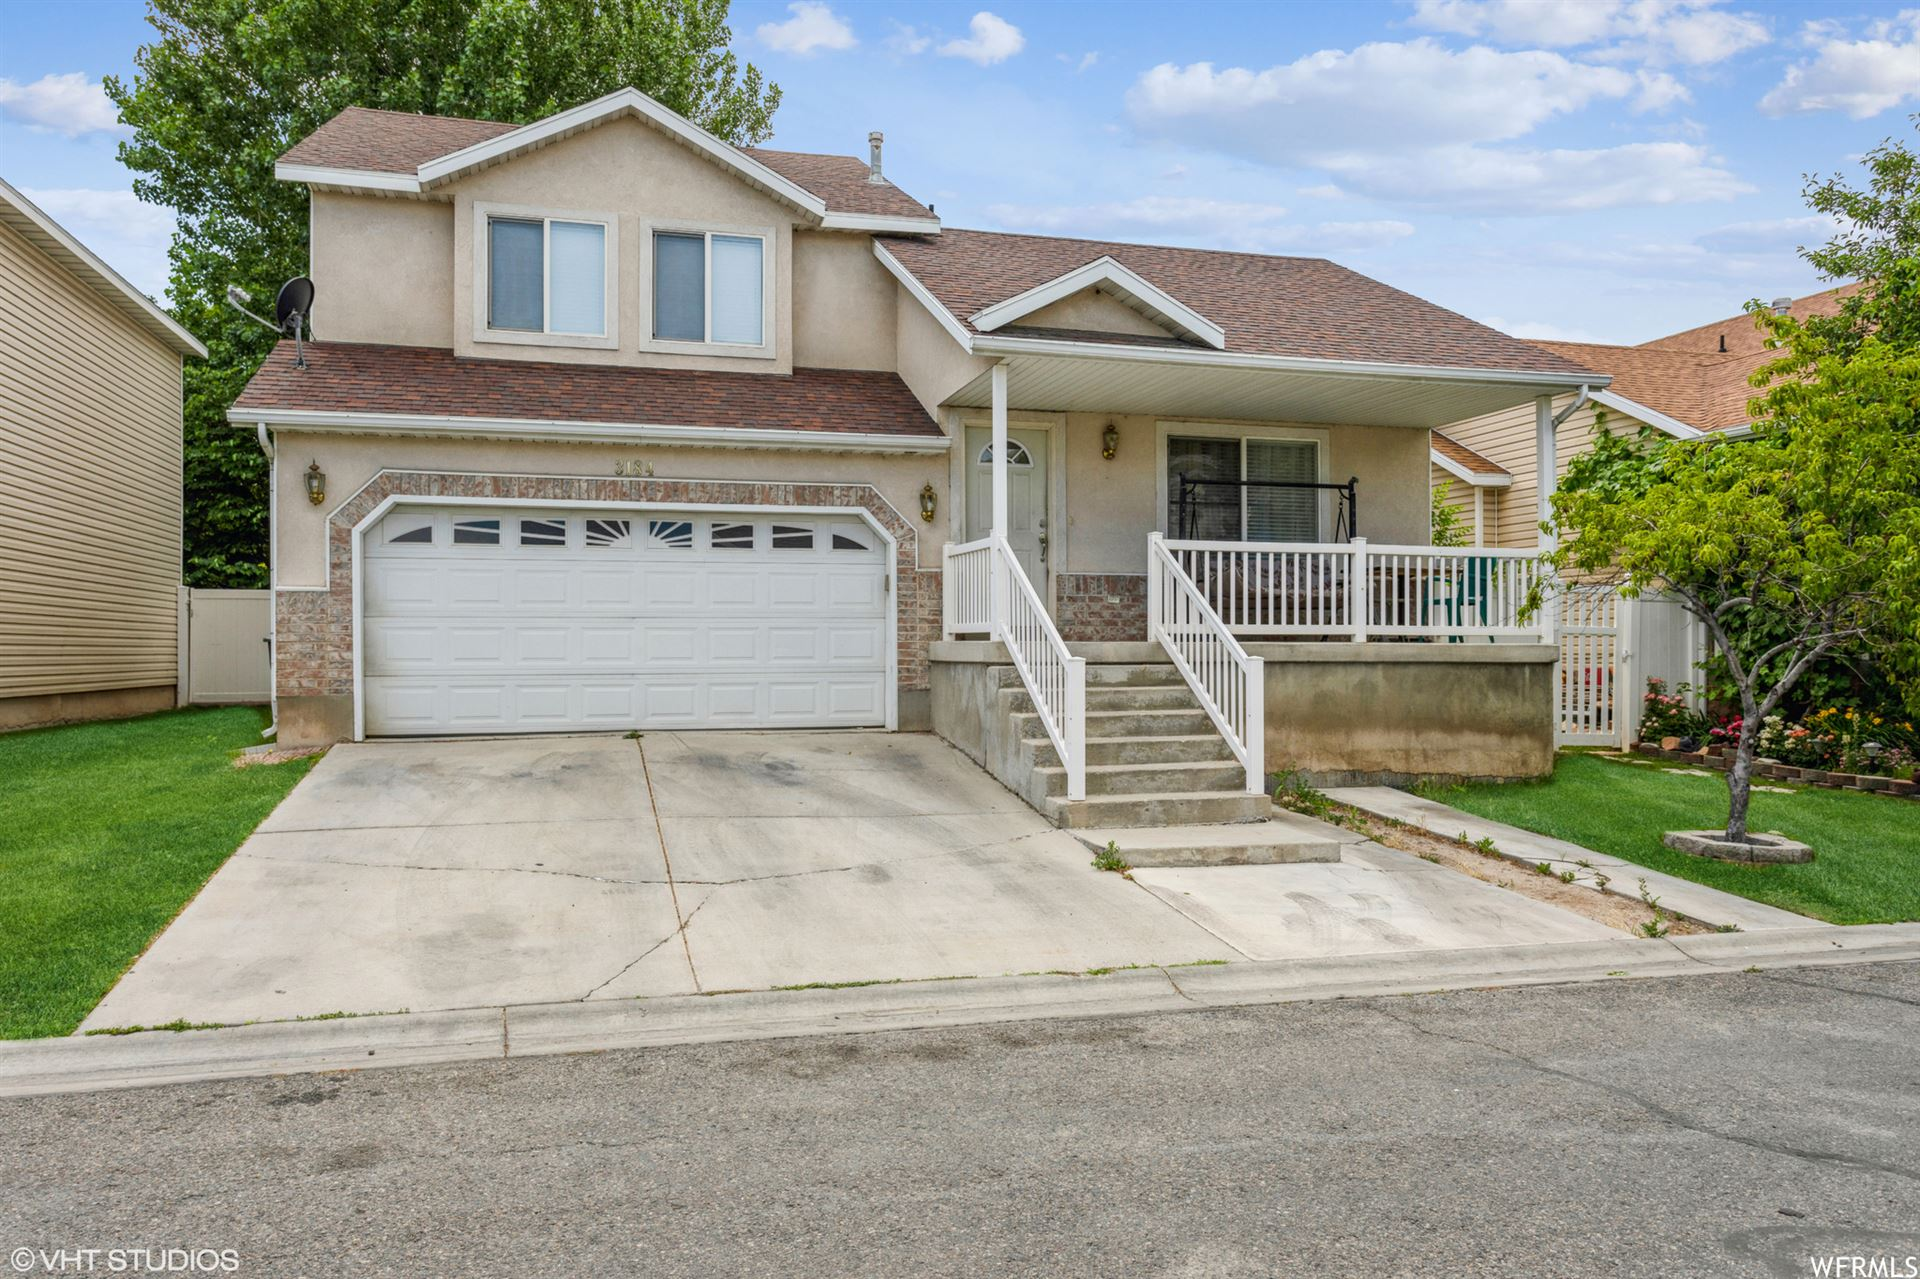 Photo of 3184 S IVY PARK W DR, West Valley City, UT 84119 (MLS # 1748595)